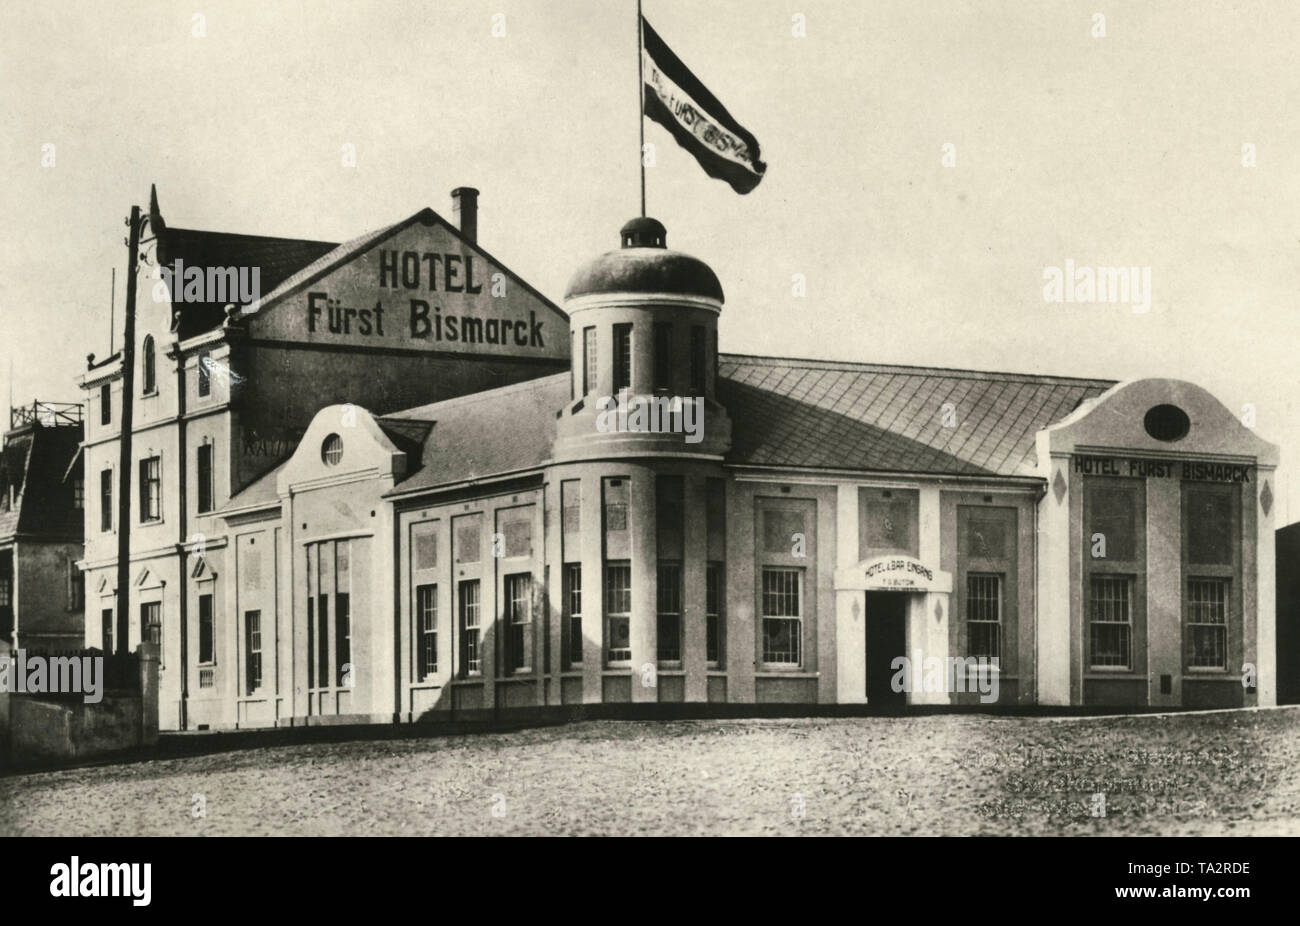 The Hotel 'Fuerst Bismarck' in Swakopmund, in the former German colony of German South West Africa. - Stock Image